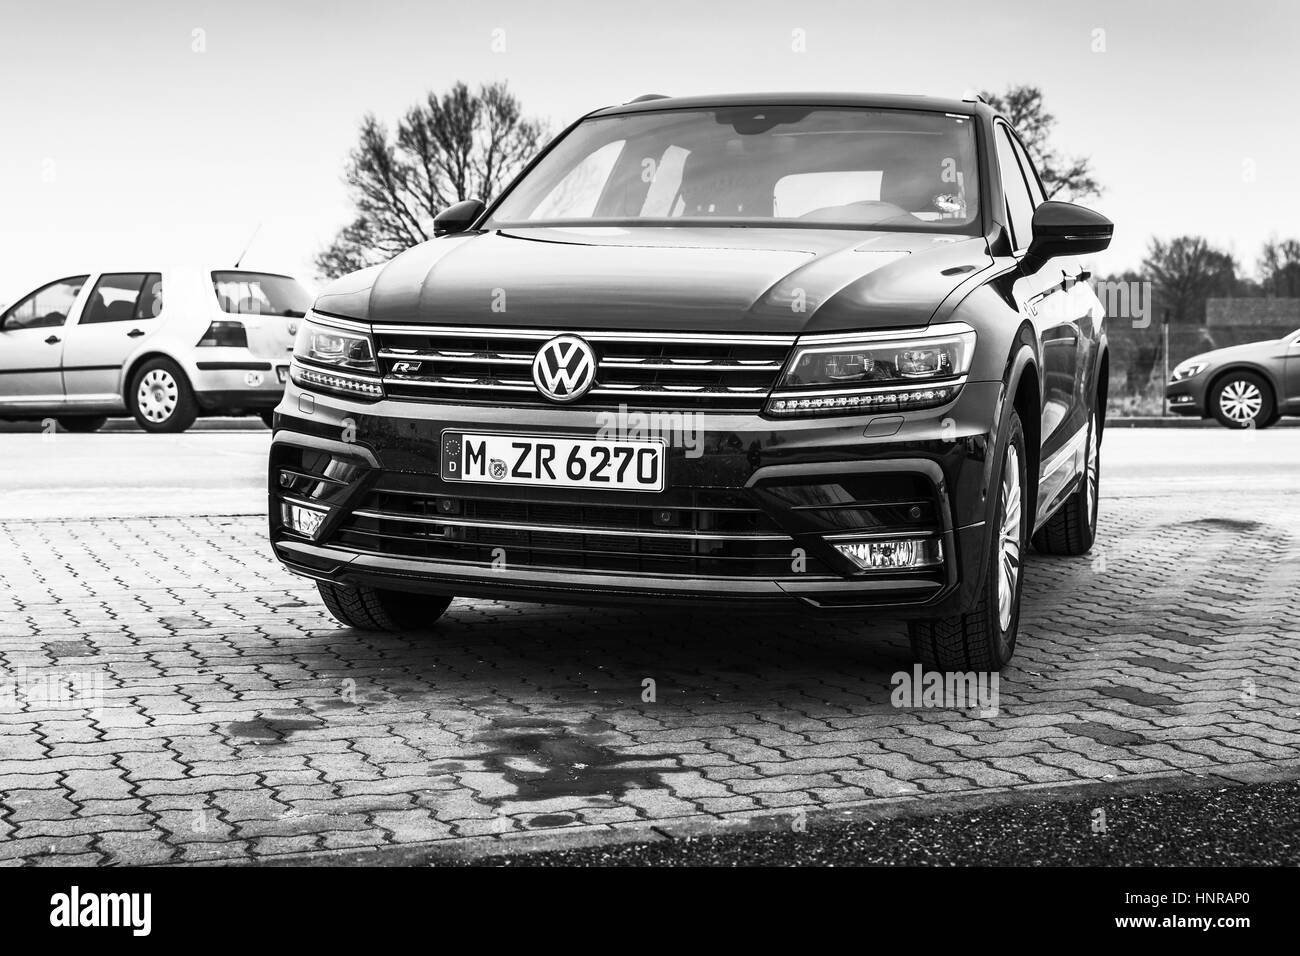 Hamburg, Germany - February 10, 2017: Outdoor photo of second generation Volkswagen Tiguan, 4x4 R-Line. Compact - Stock Image